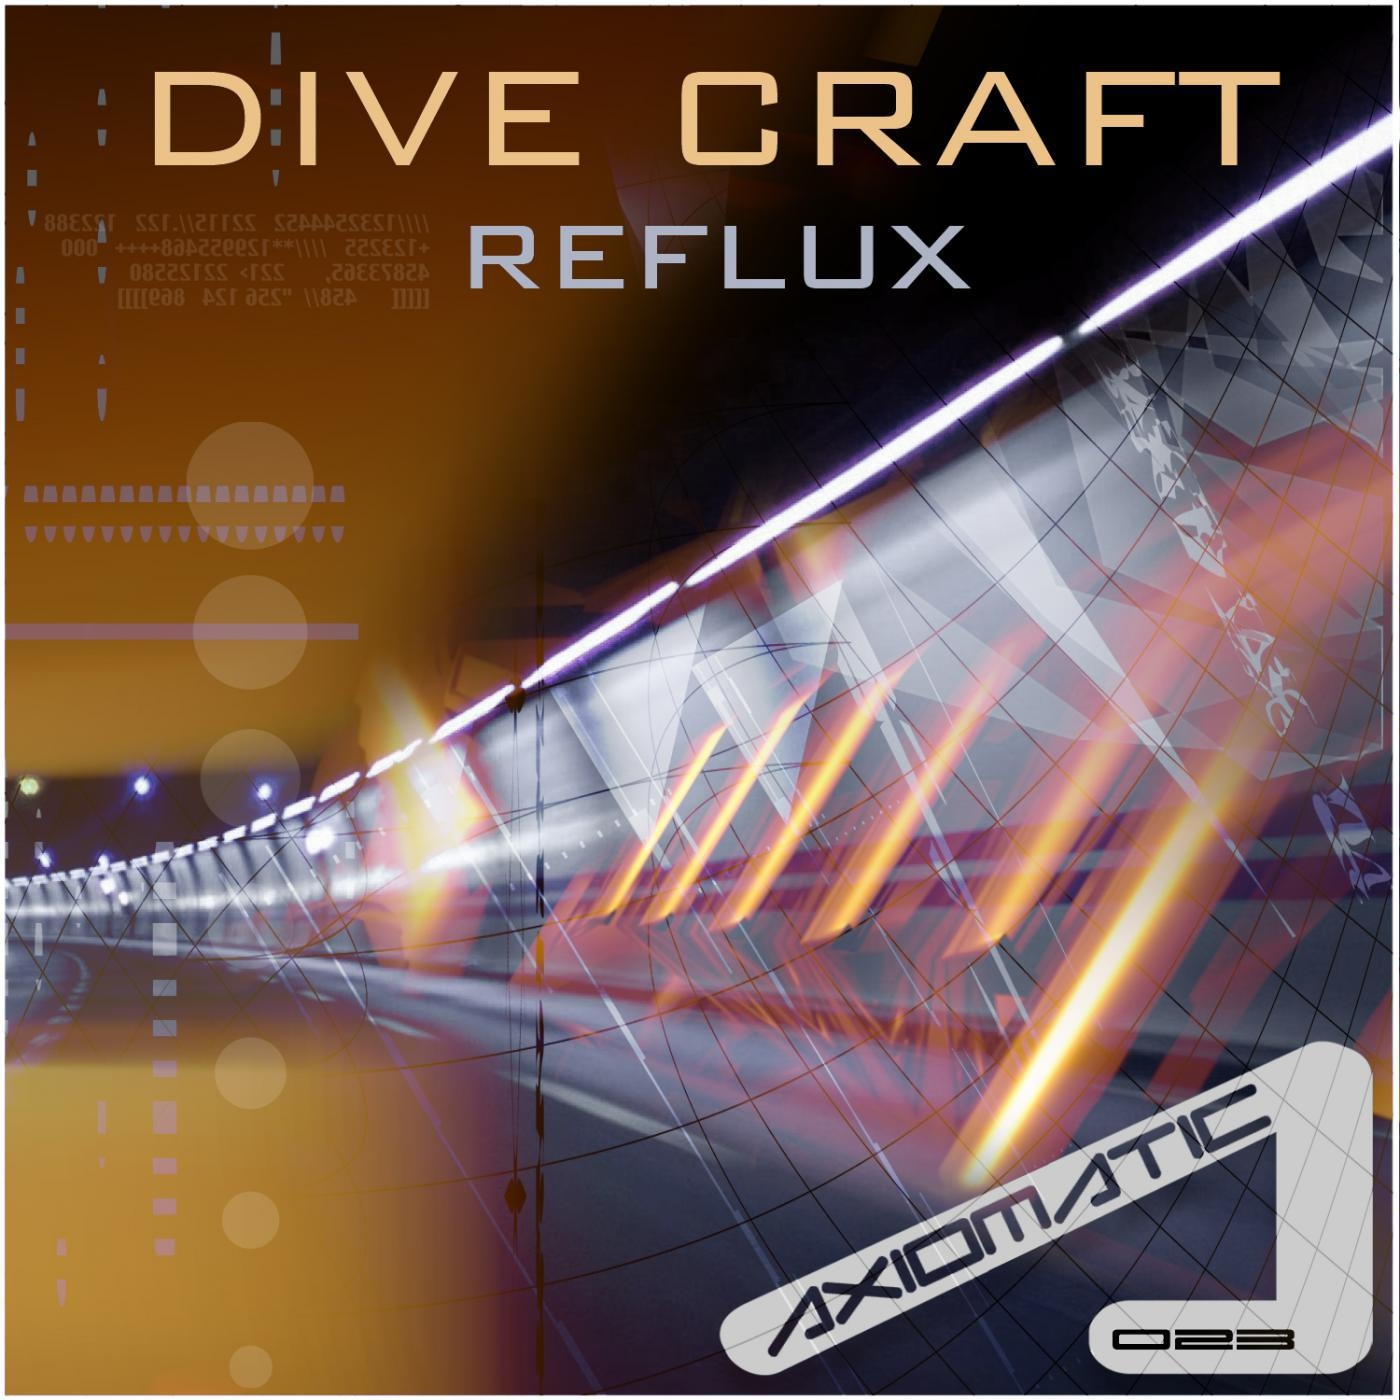 Dive Craft - Reflux (Original mix)